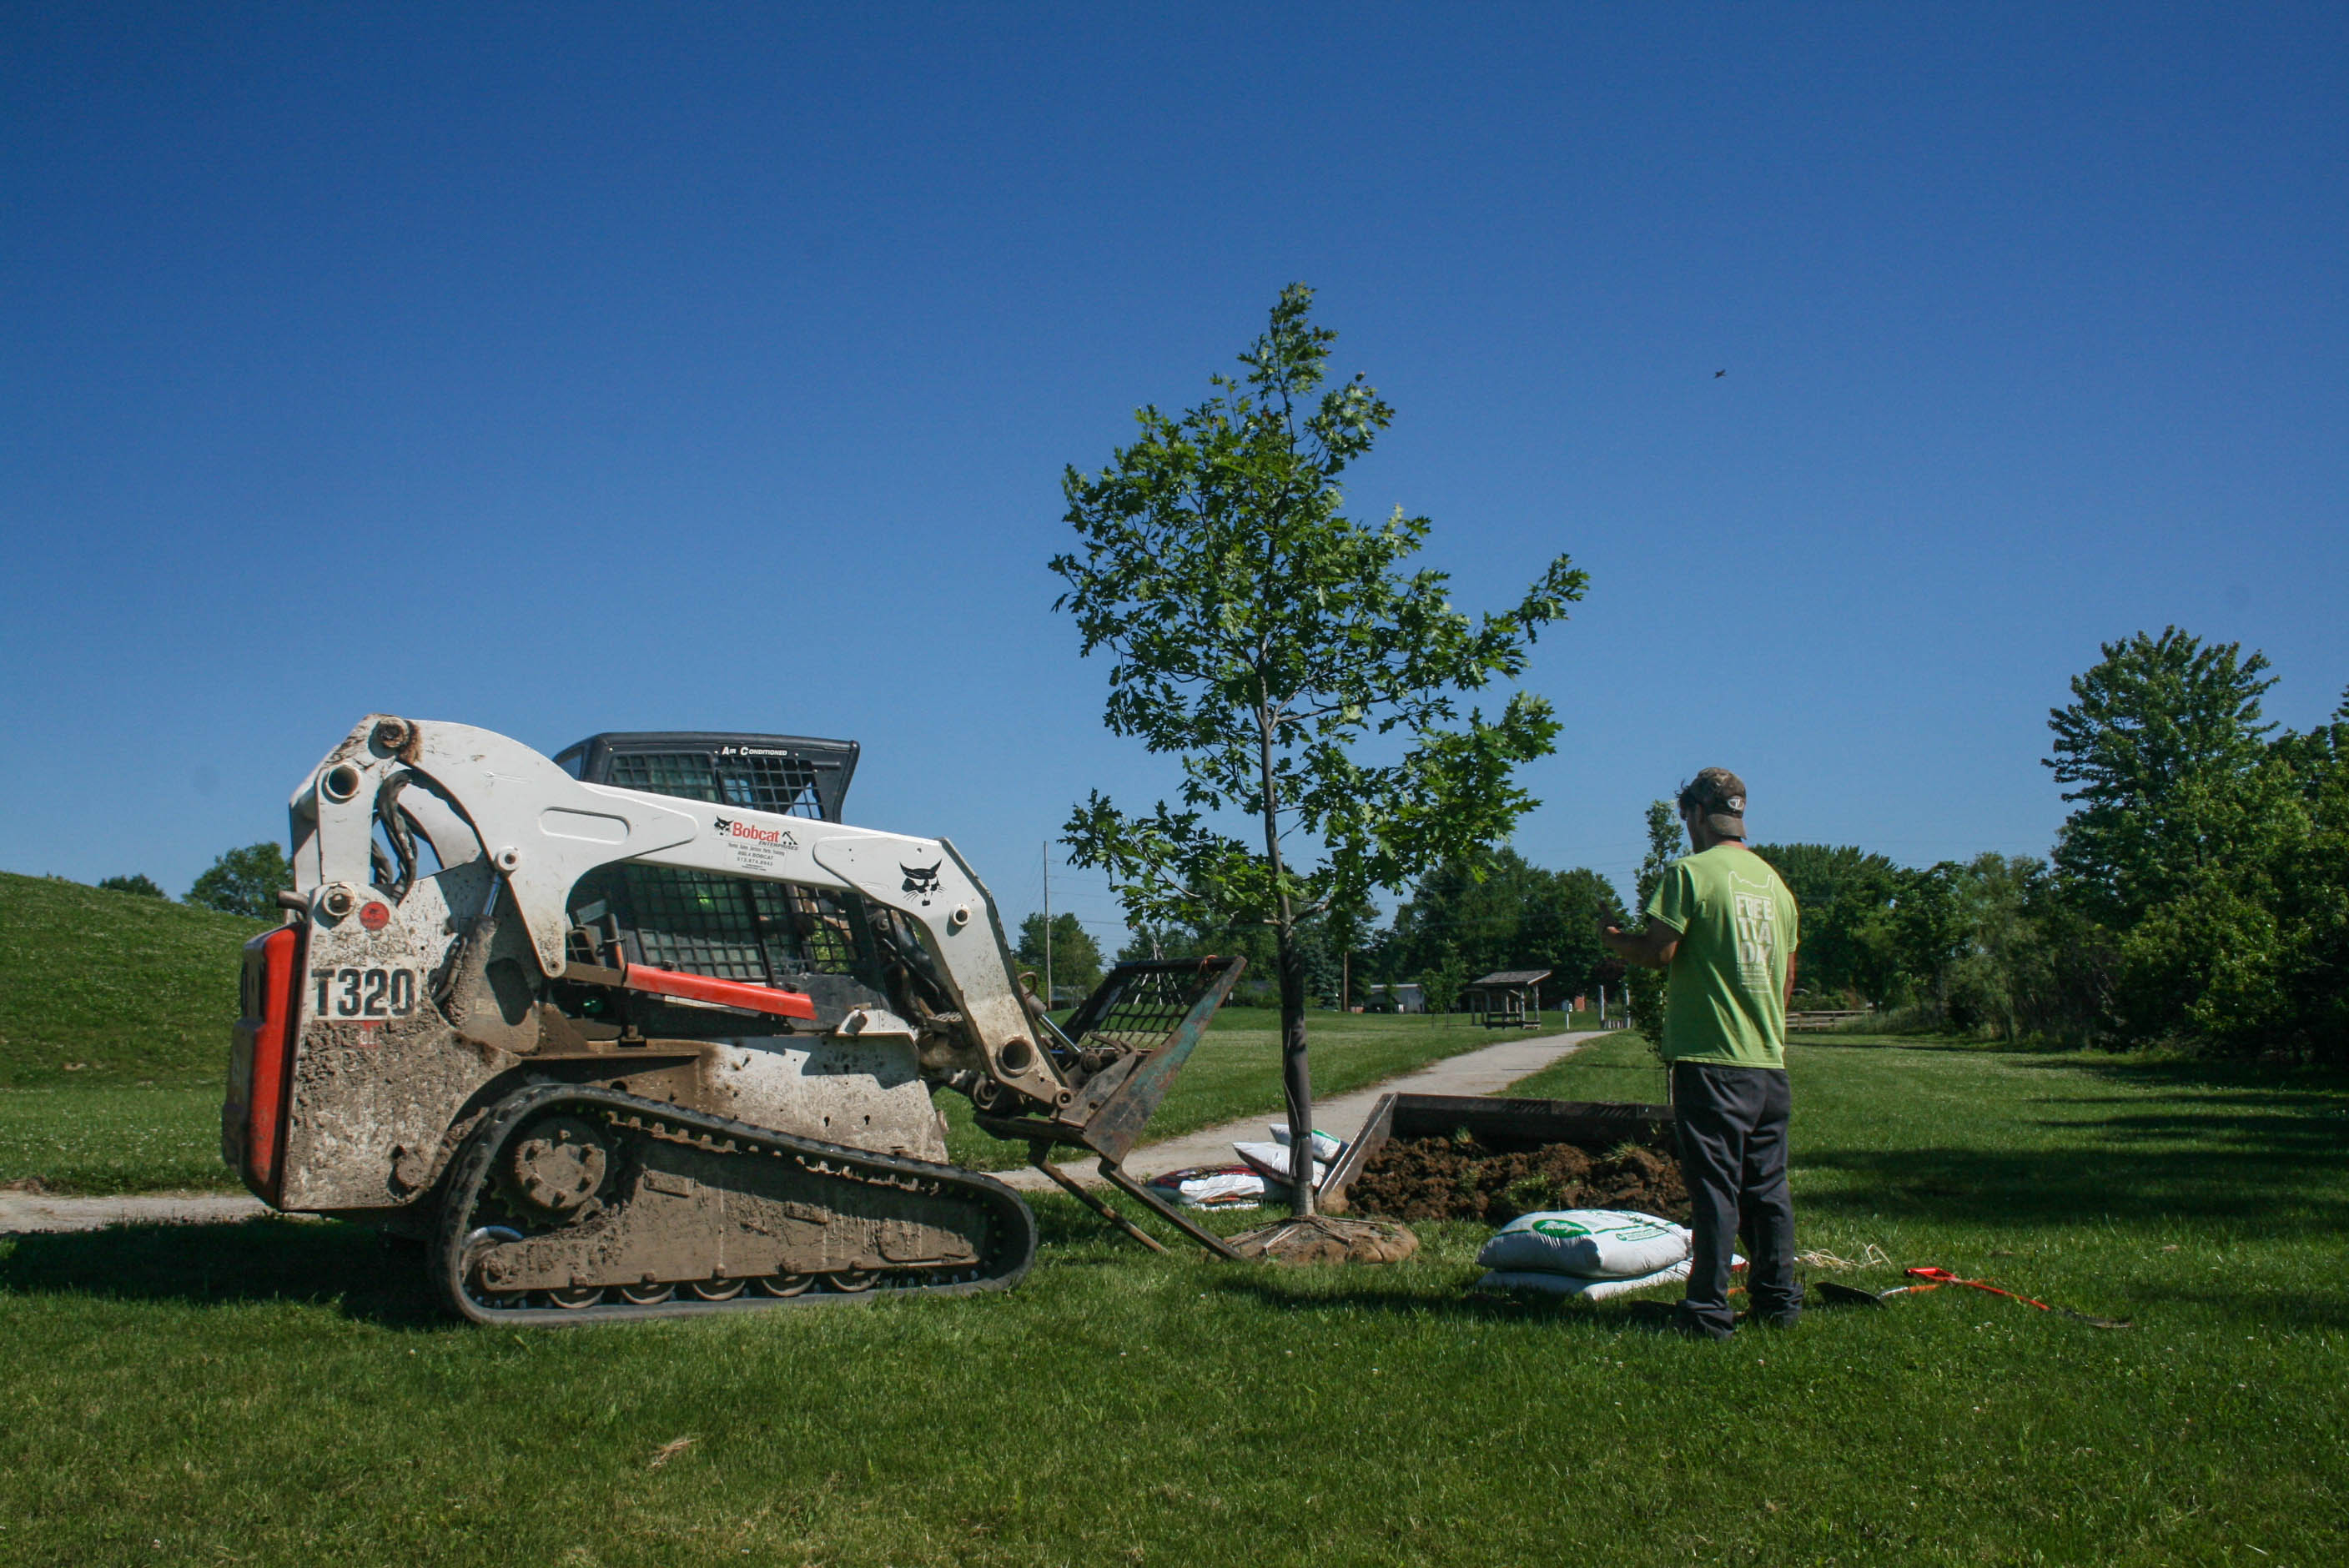 Tree donated to celebrate 2017 World Landscape Architecture Month